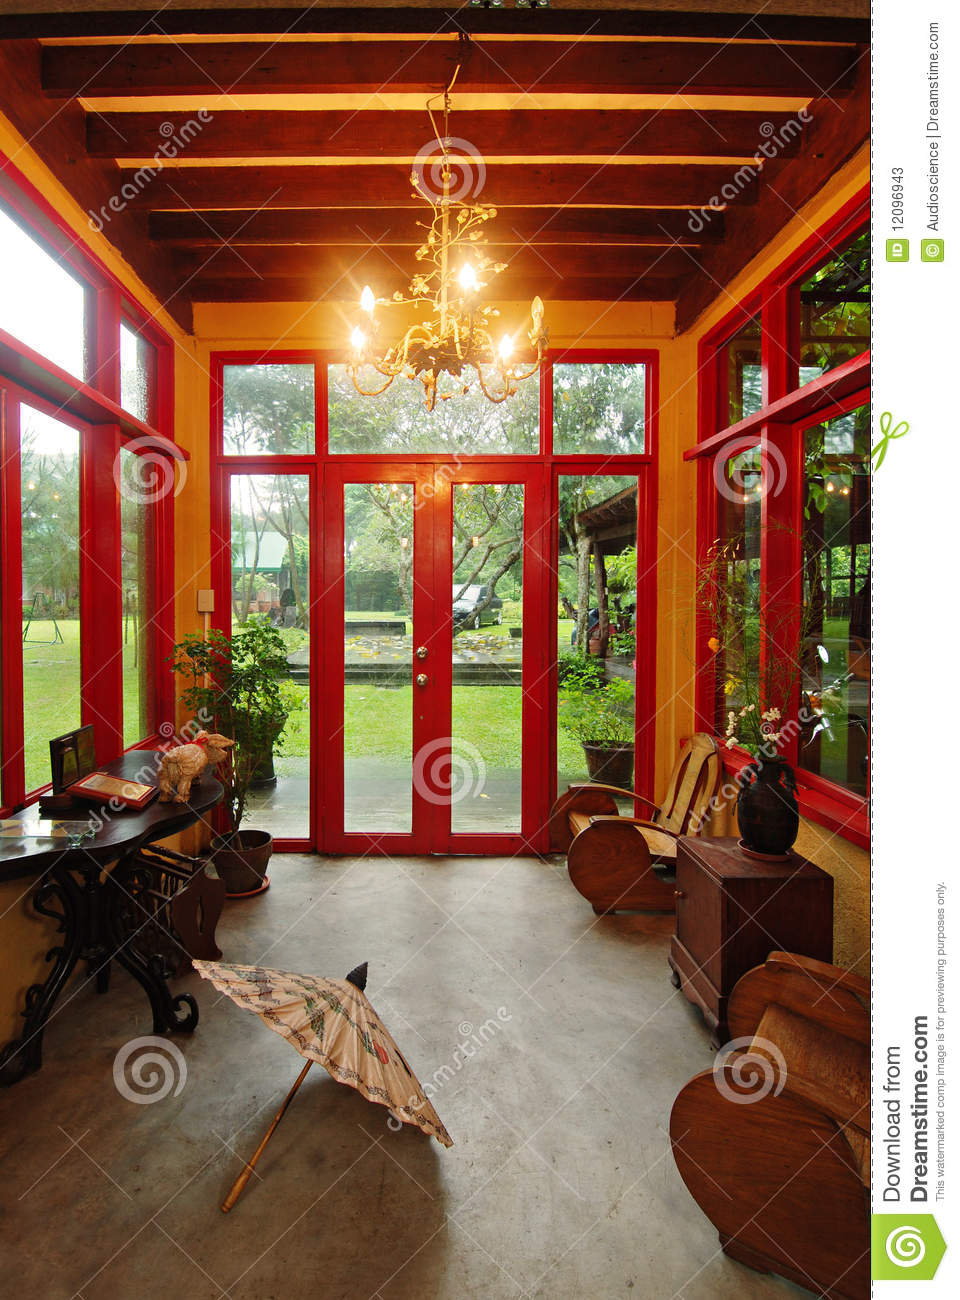 Asian Themed Room With A View Stock Image - Image of ...